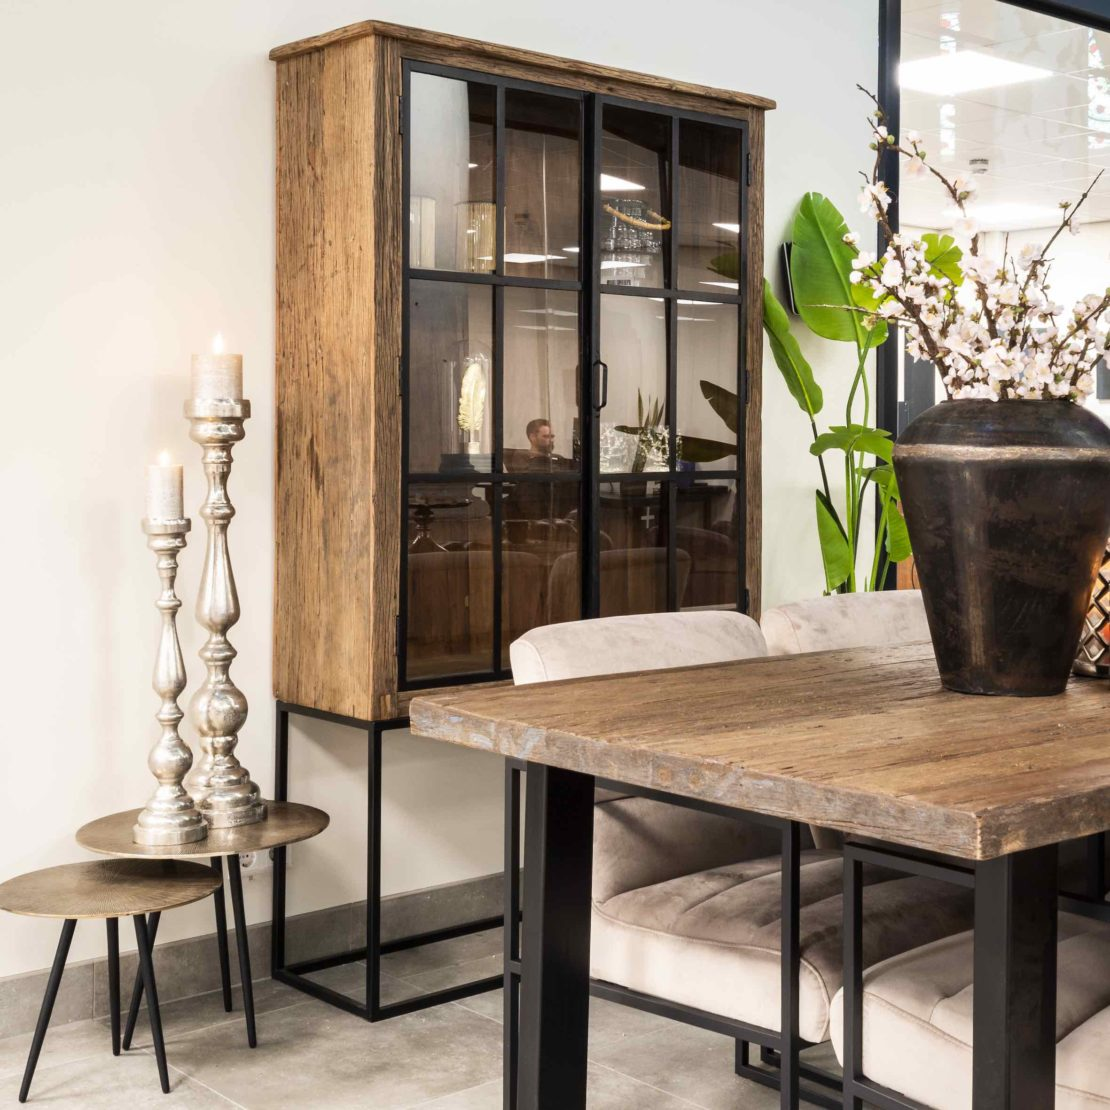 showhome furniture collection, Industrial Recycled Wood Cabinet